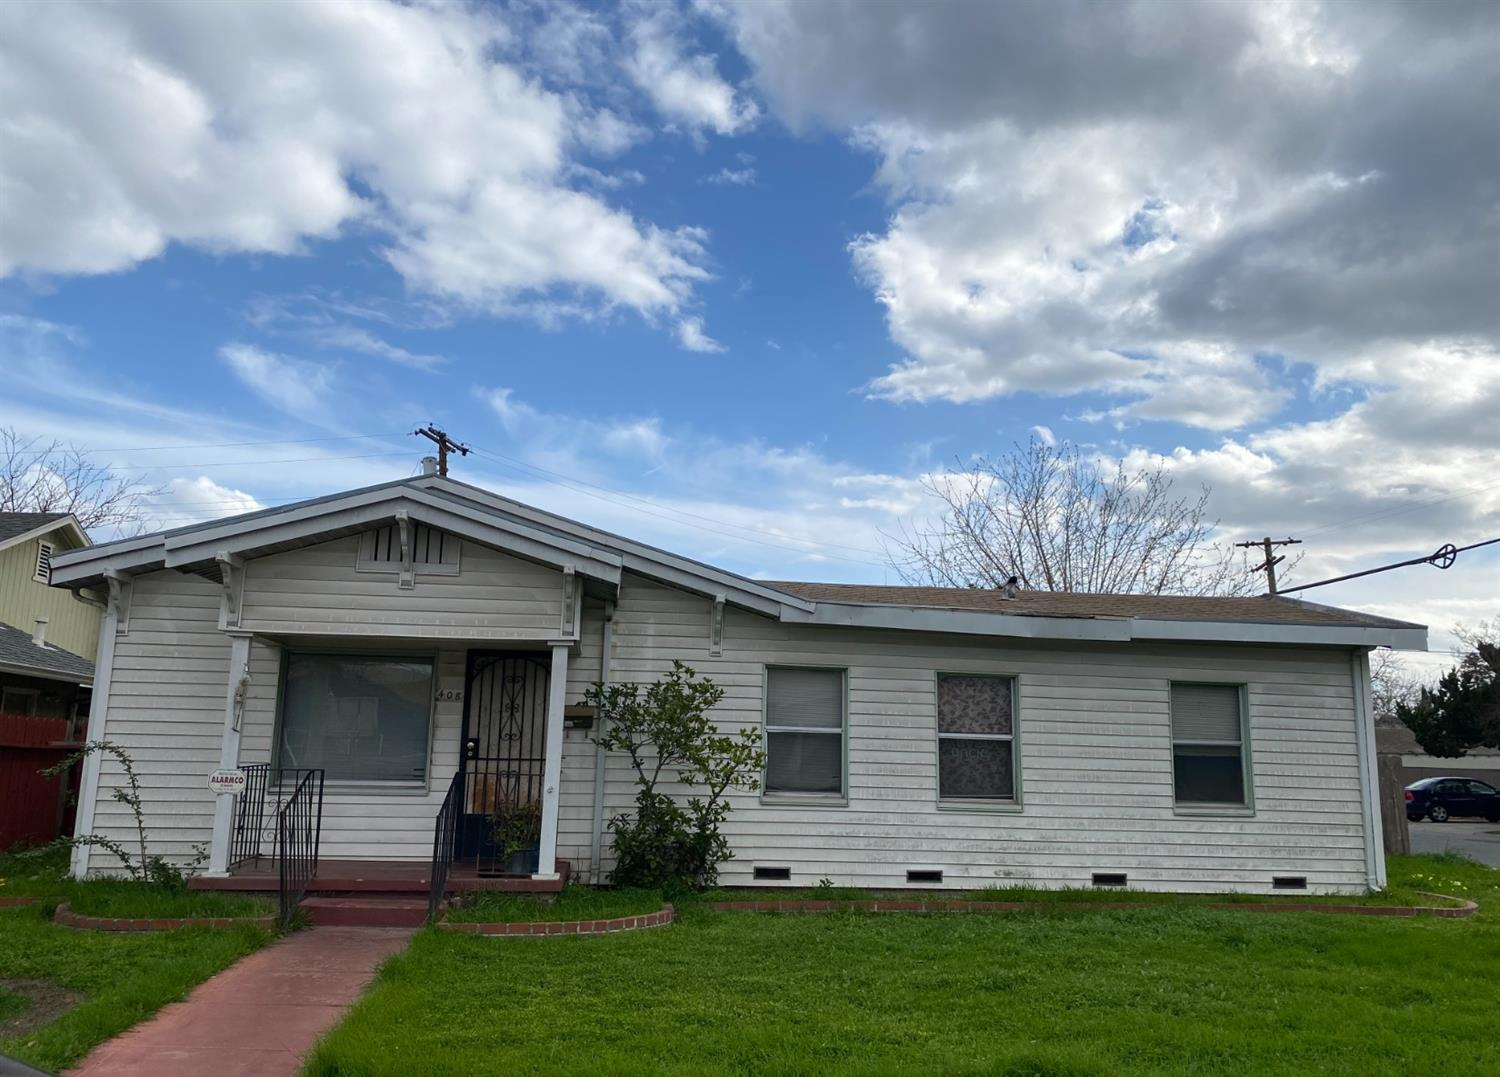 Photo of 408 E Noble Street, Stockton, CA 95204